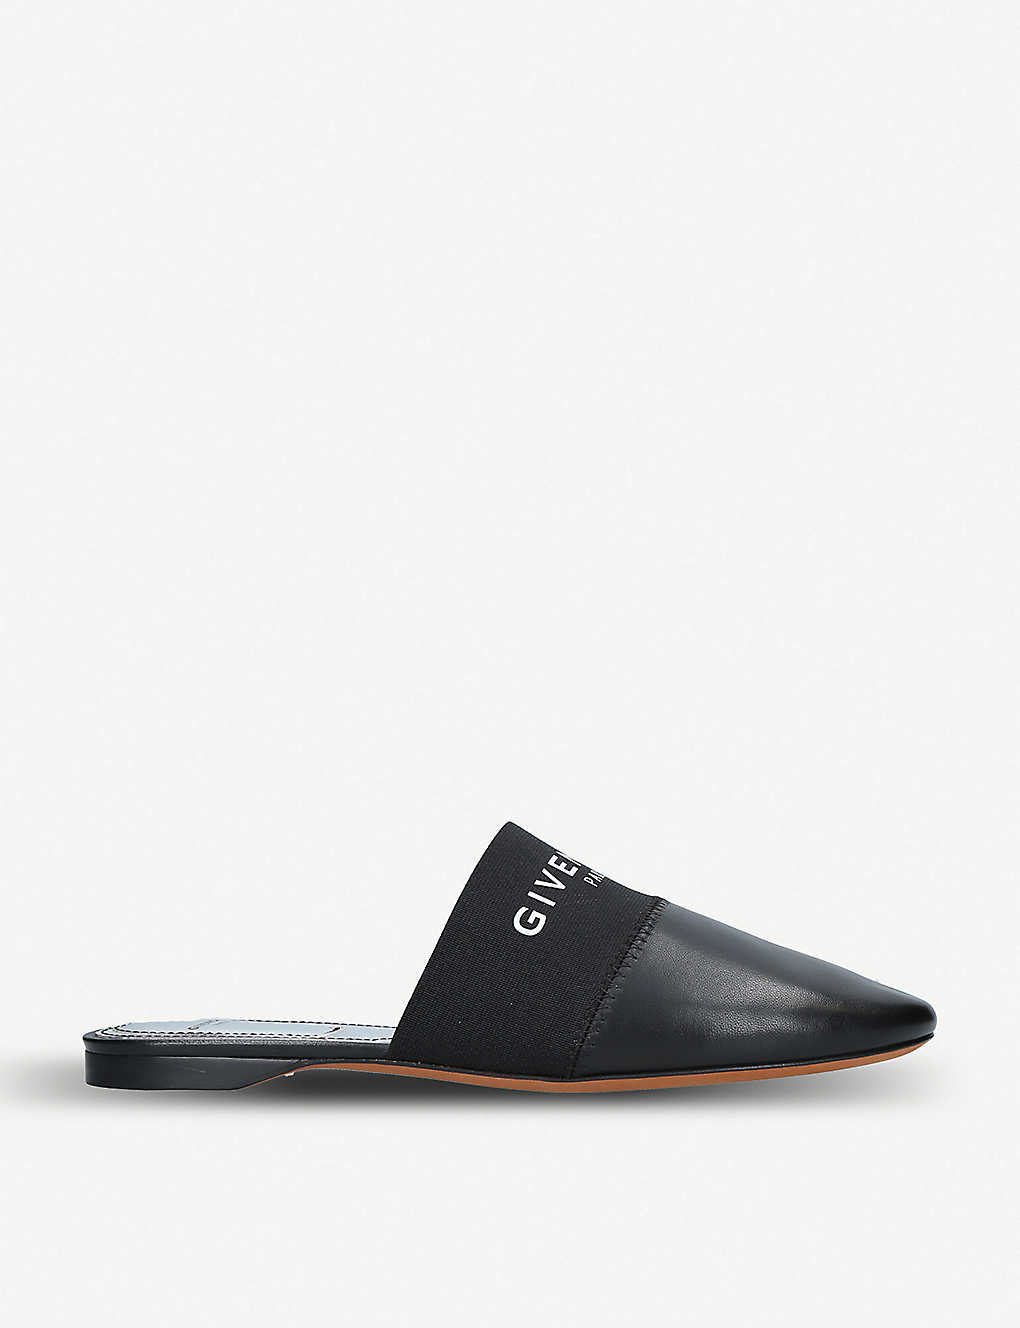 3aea917c63d3 GIVENCHY - Bedford logo-print leather backless mules